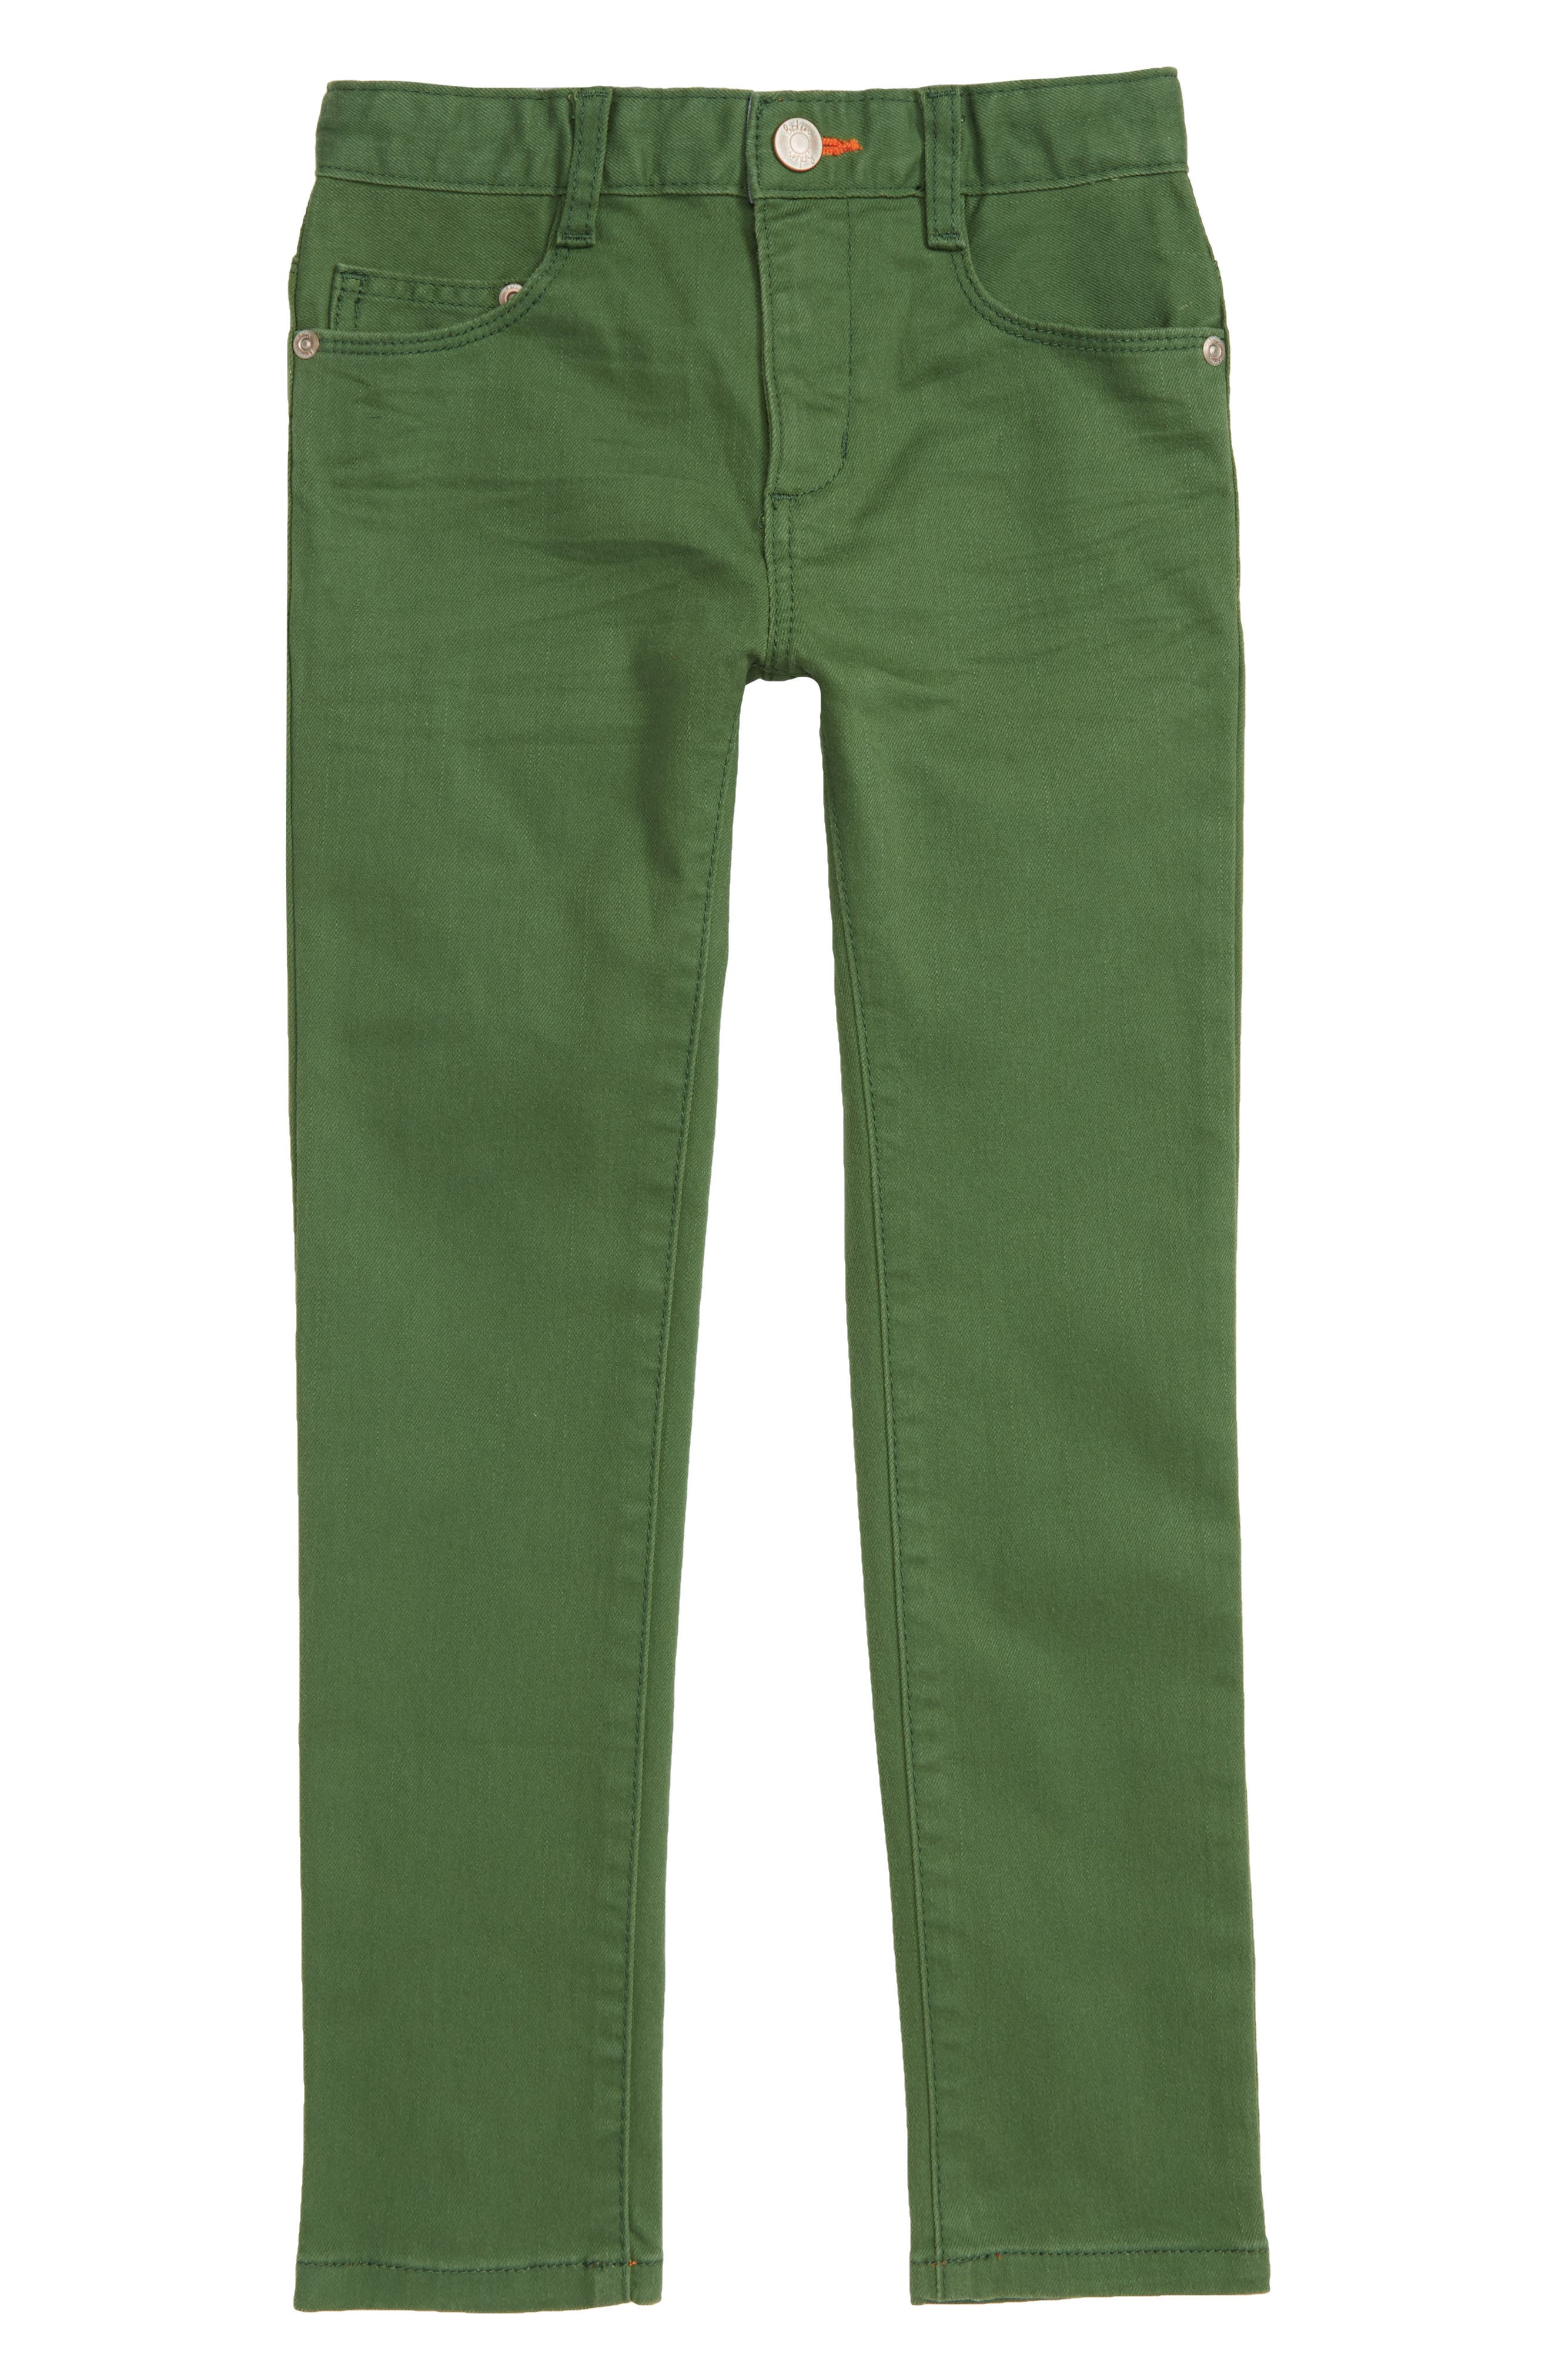 MINI BODEN,                             Color Skinny Jeans,                             Main thumbnail 1, color,                             315